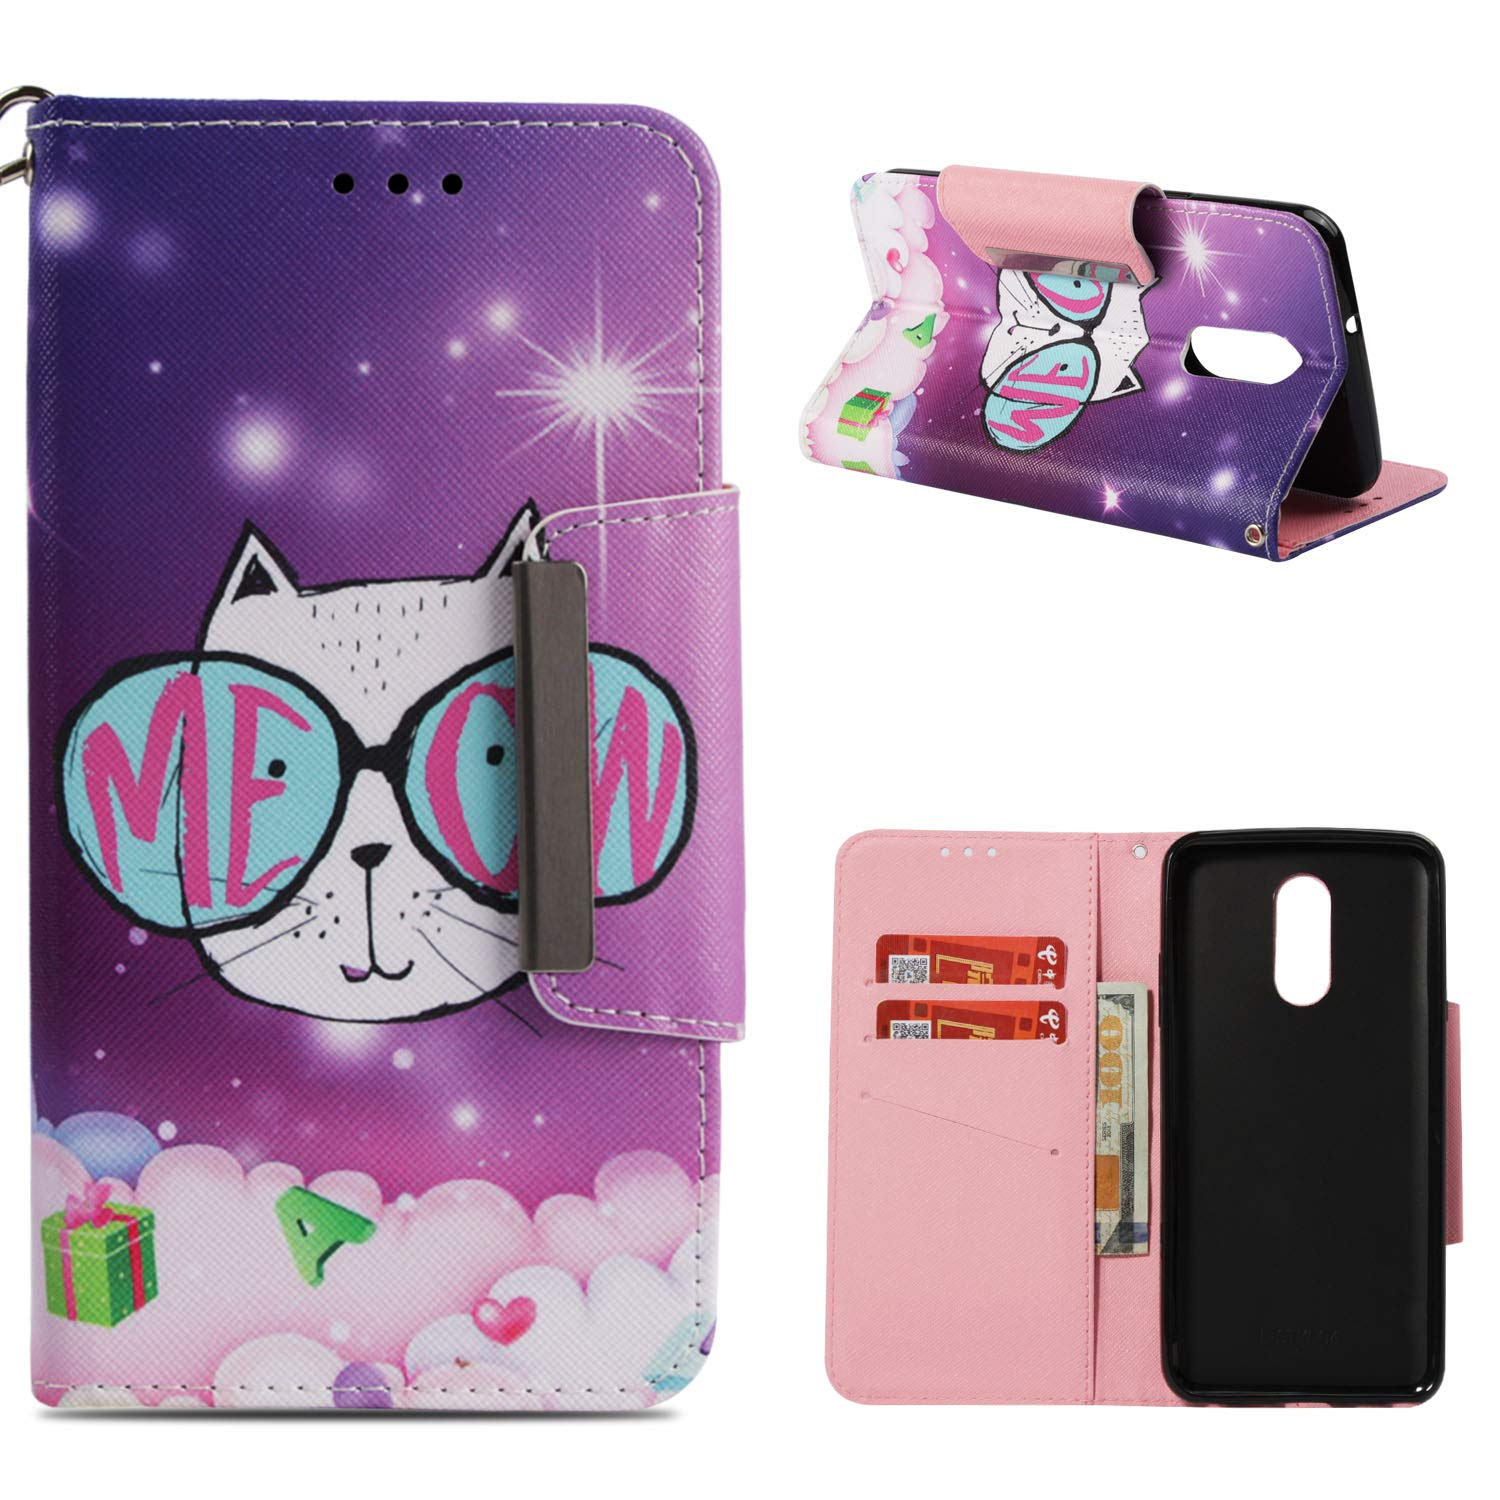 Leather Wallet Case for LG Q Stylus/LG Stylo 4,Shinyzone Cute Cartoon Animal Cat Painted Pattern Flip Stand Case,Wristlet & Metal Magnetic Closure Protective Cover